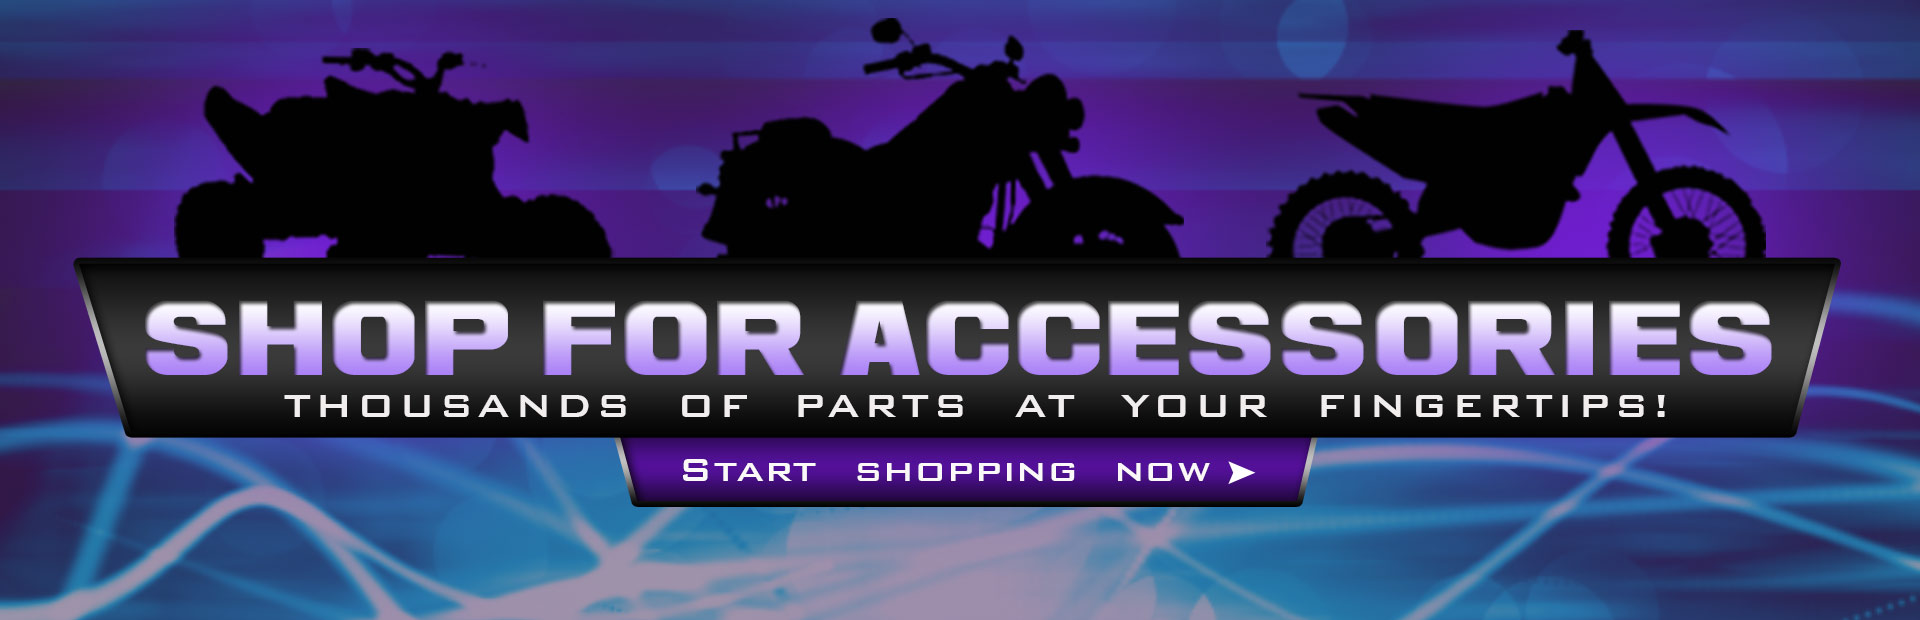 We have thousands of parts and accessories at your fingertips! Click here to start shopping now.